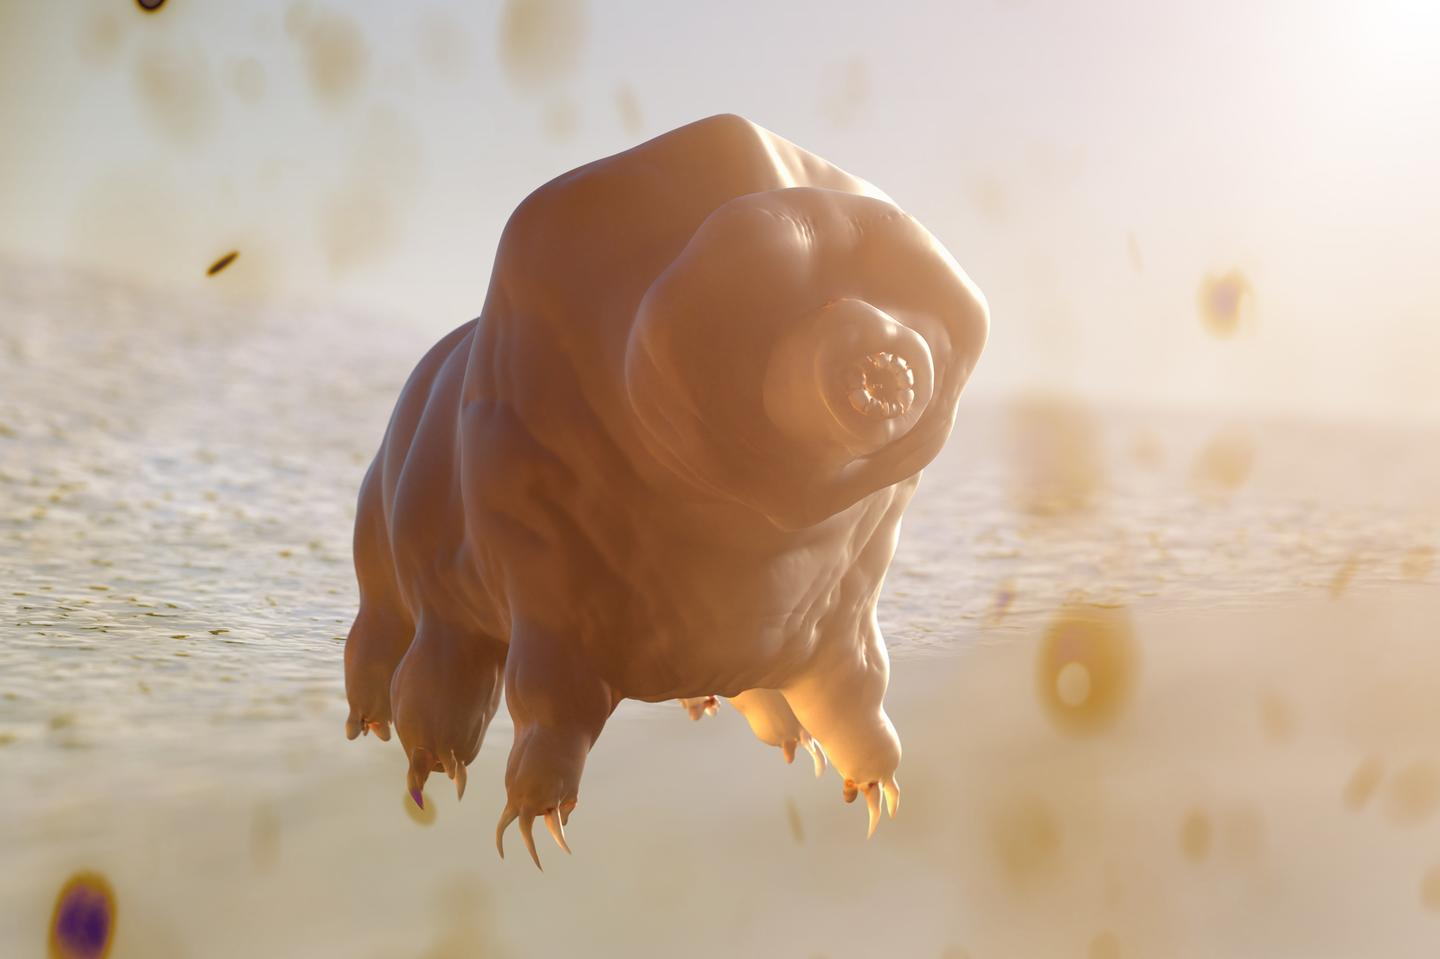 The tardigrade is known to be one of nature's hardiest creatures, and scientists have just discovered a new species that uses a previously unknown tool to survive